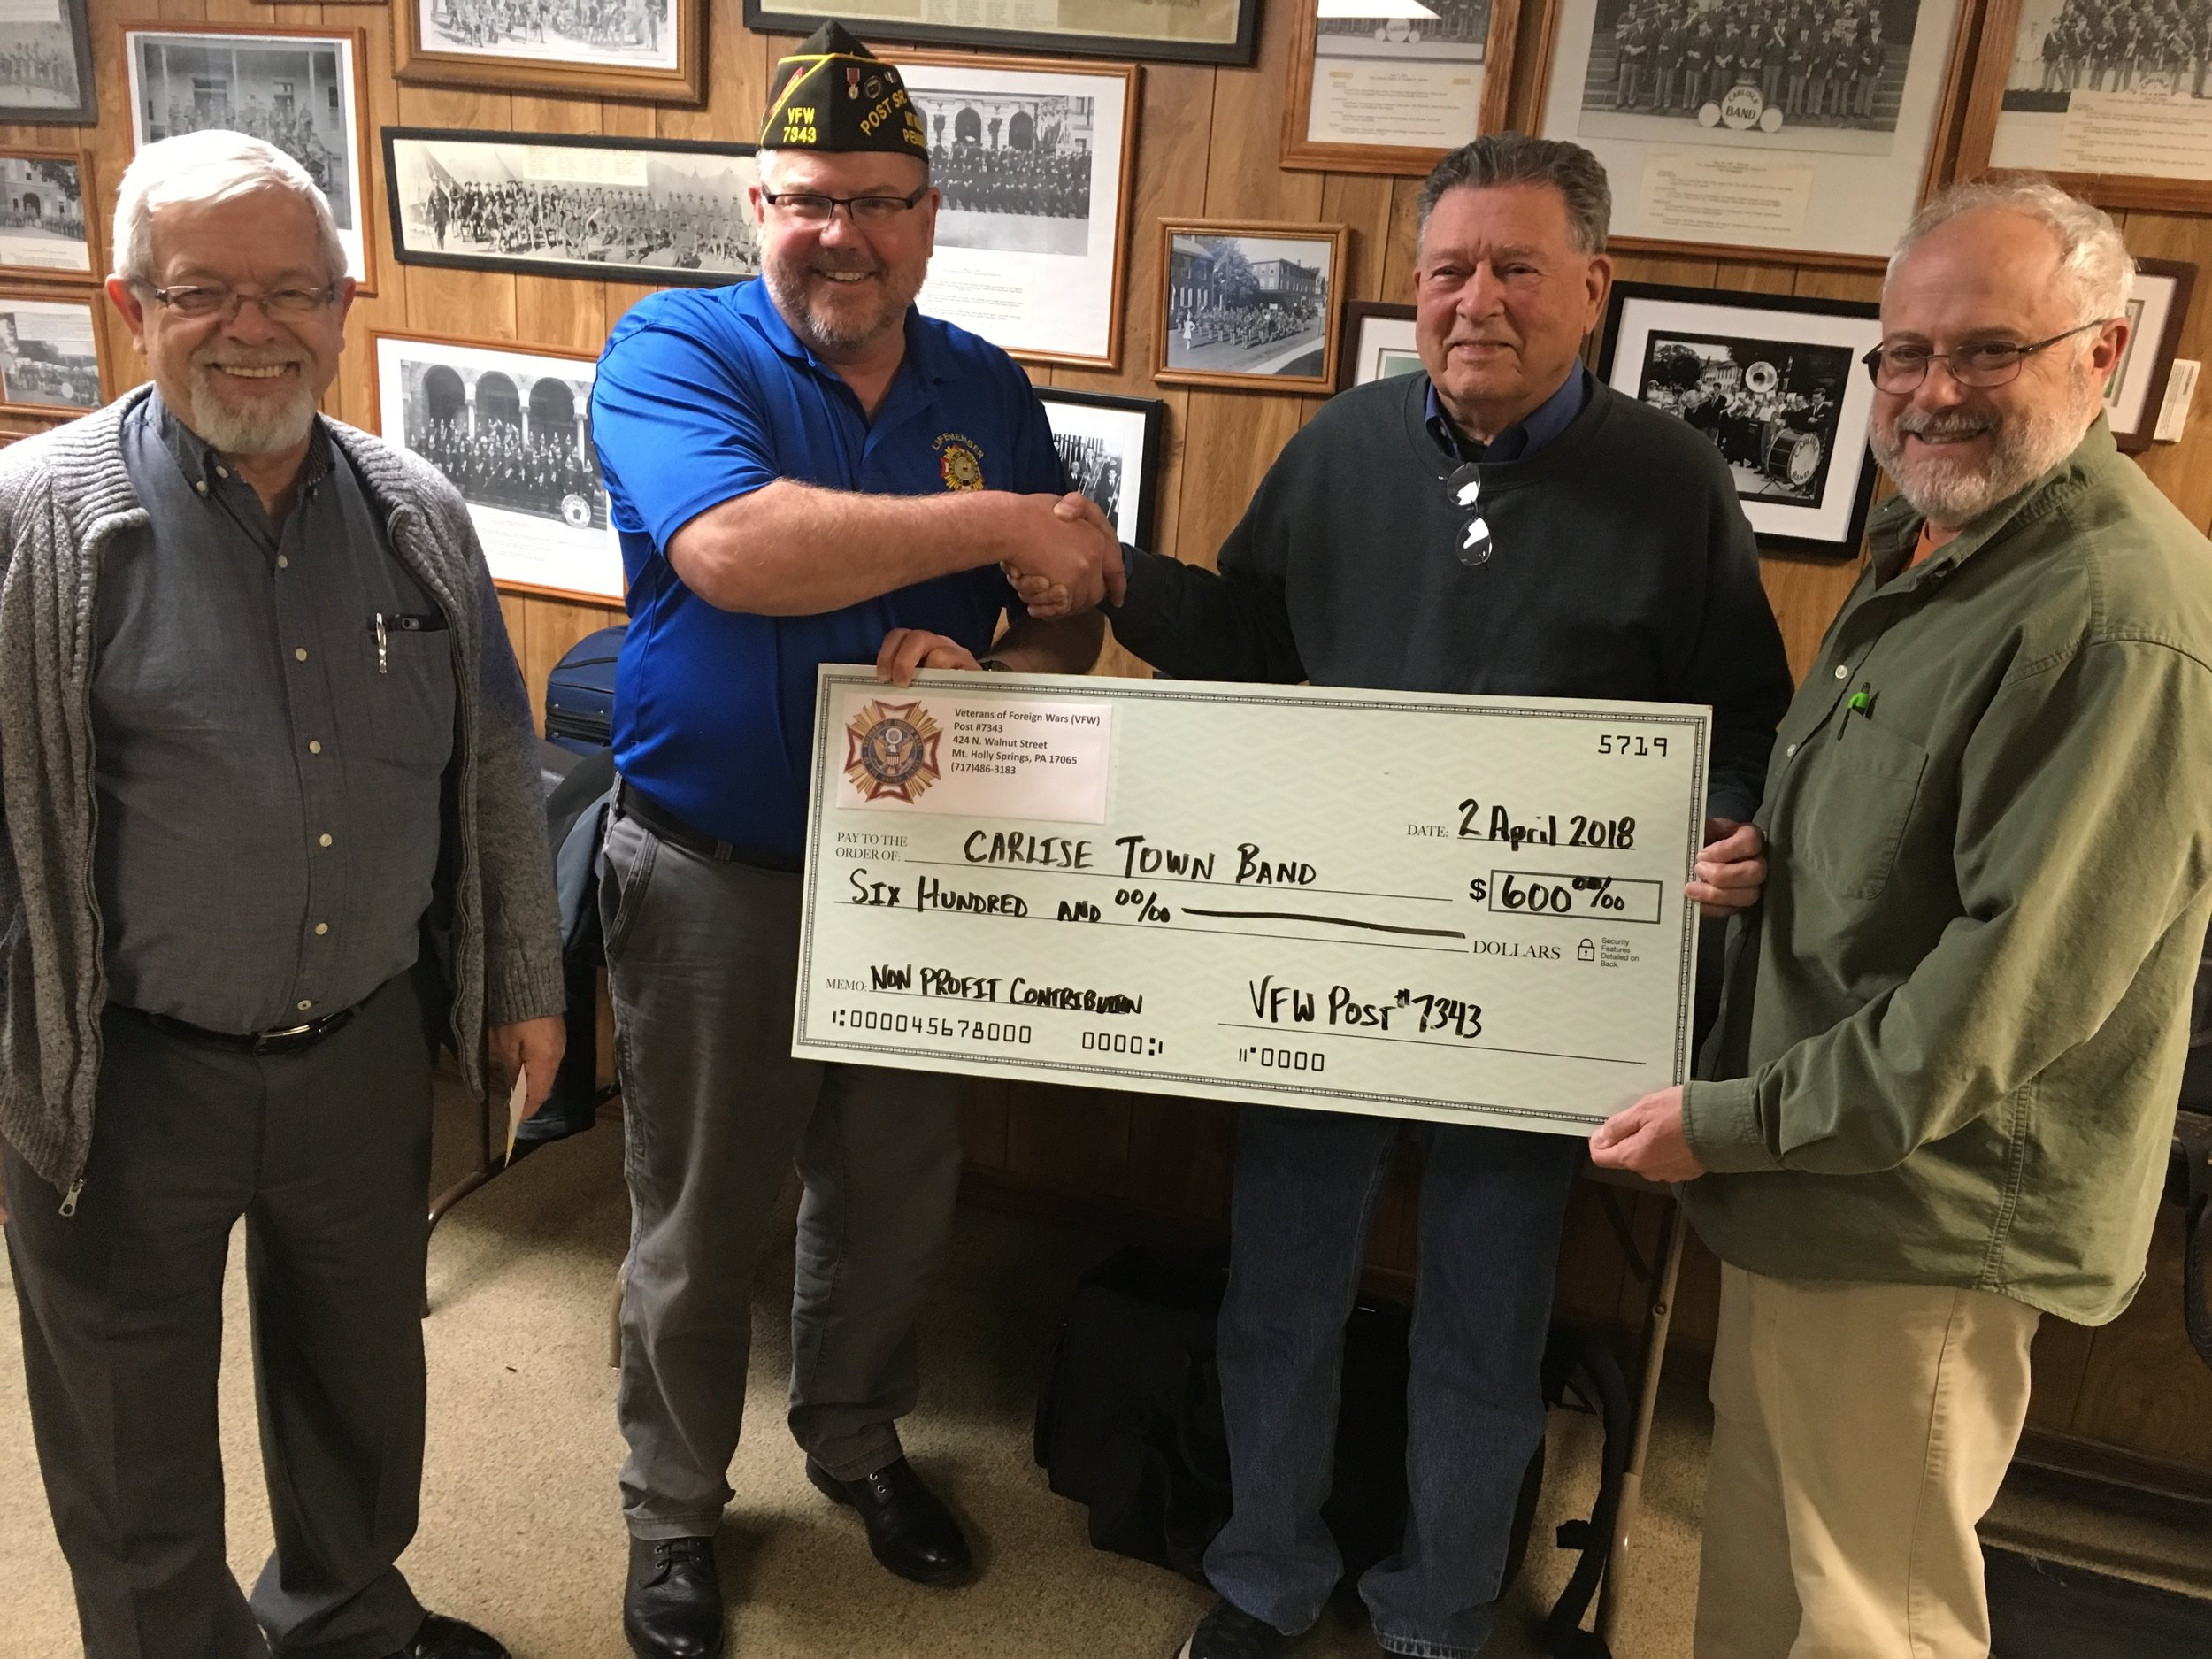 Reinhard Beel, Bob Loy & Jim Shufelt accept donation from VFW Post